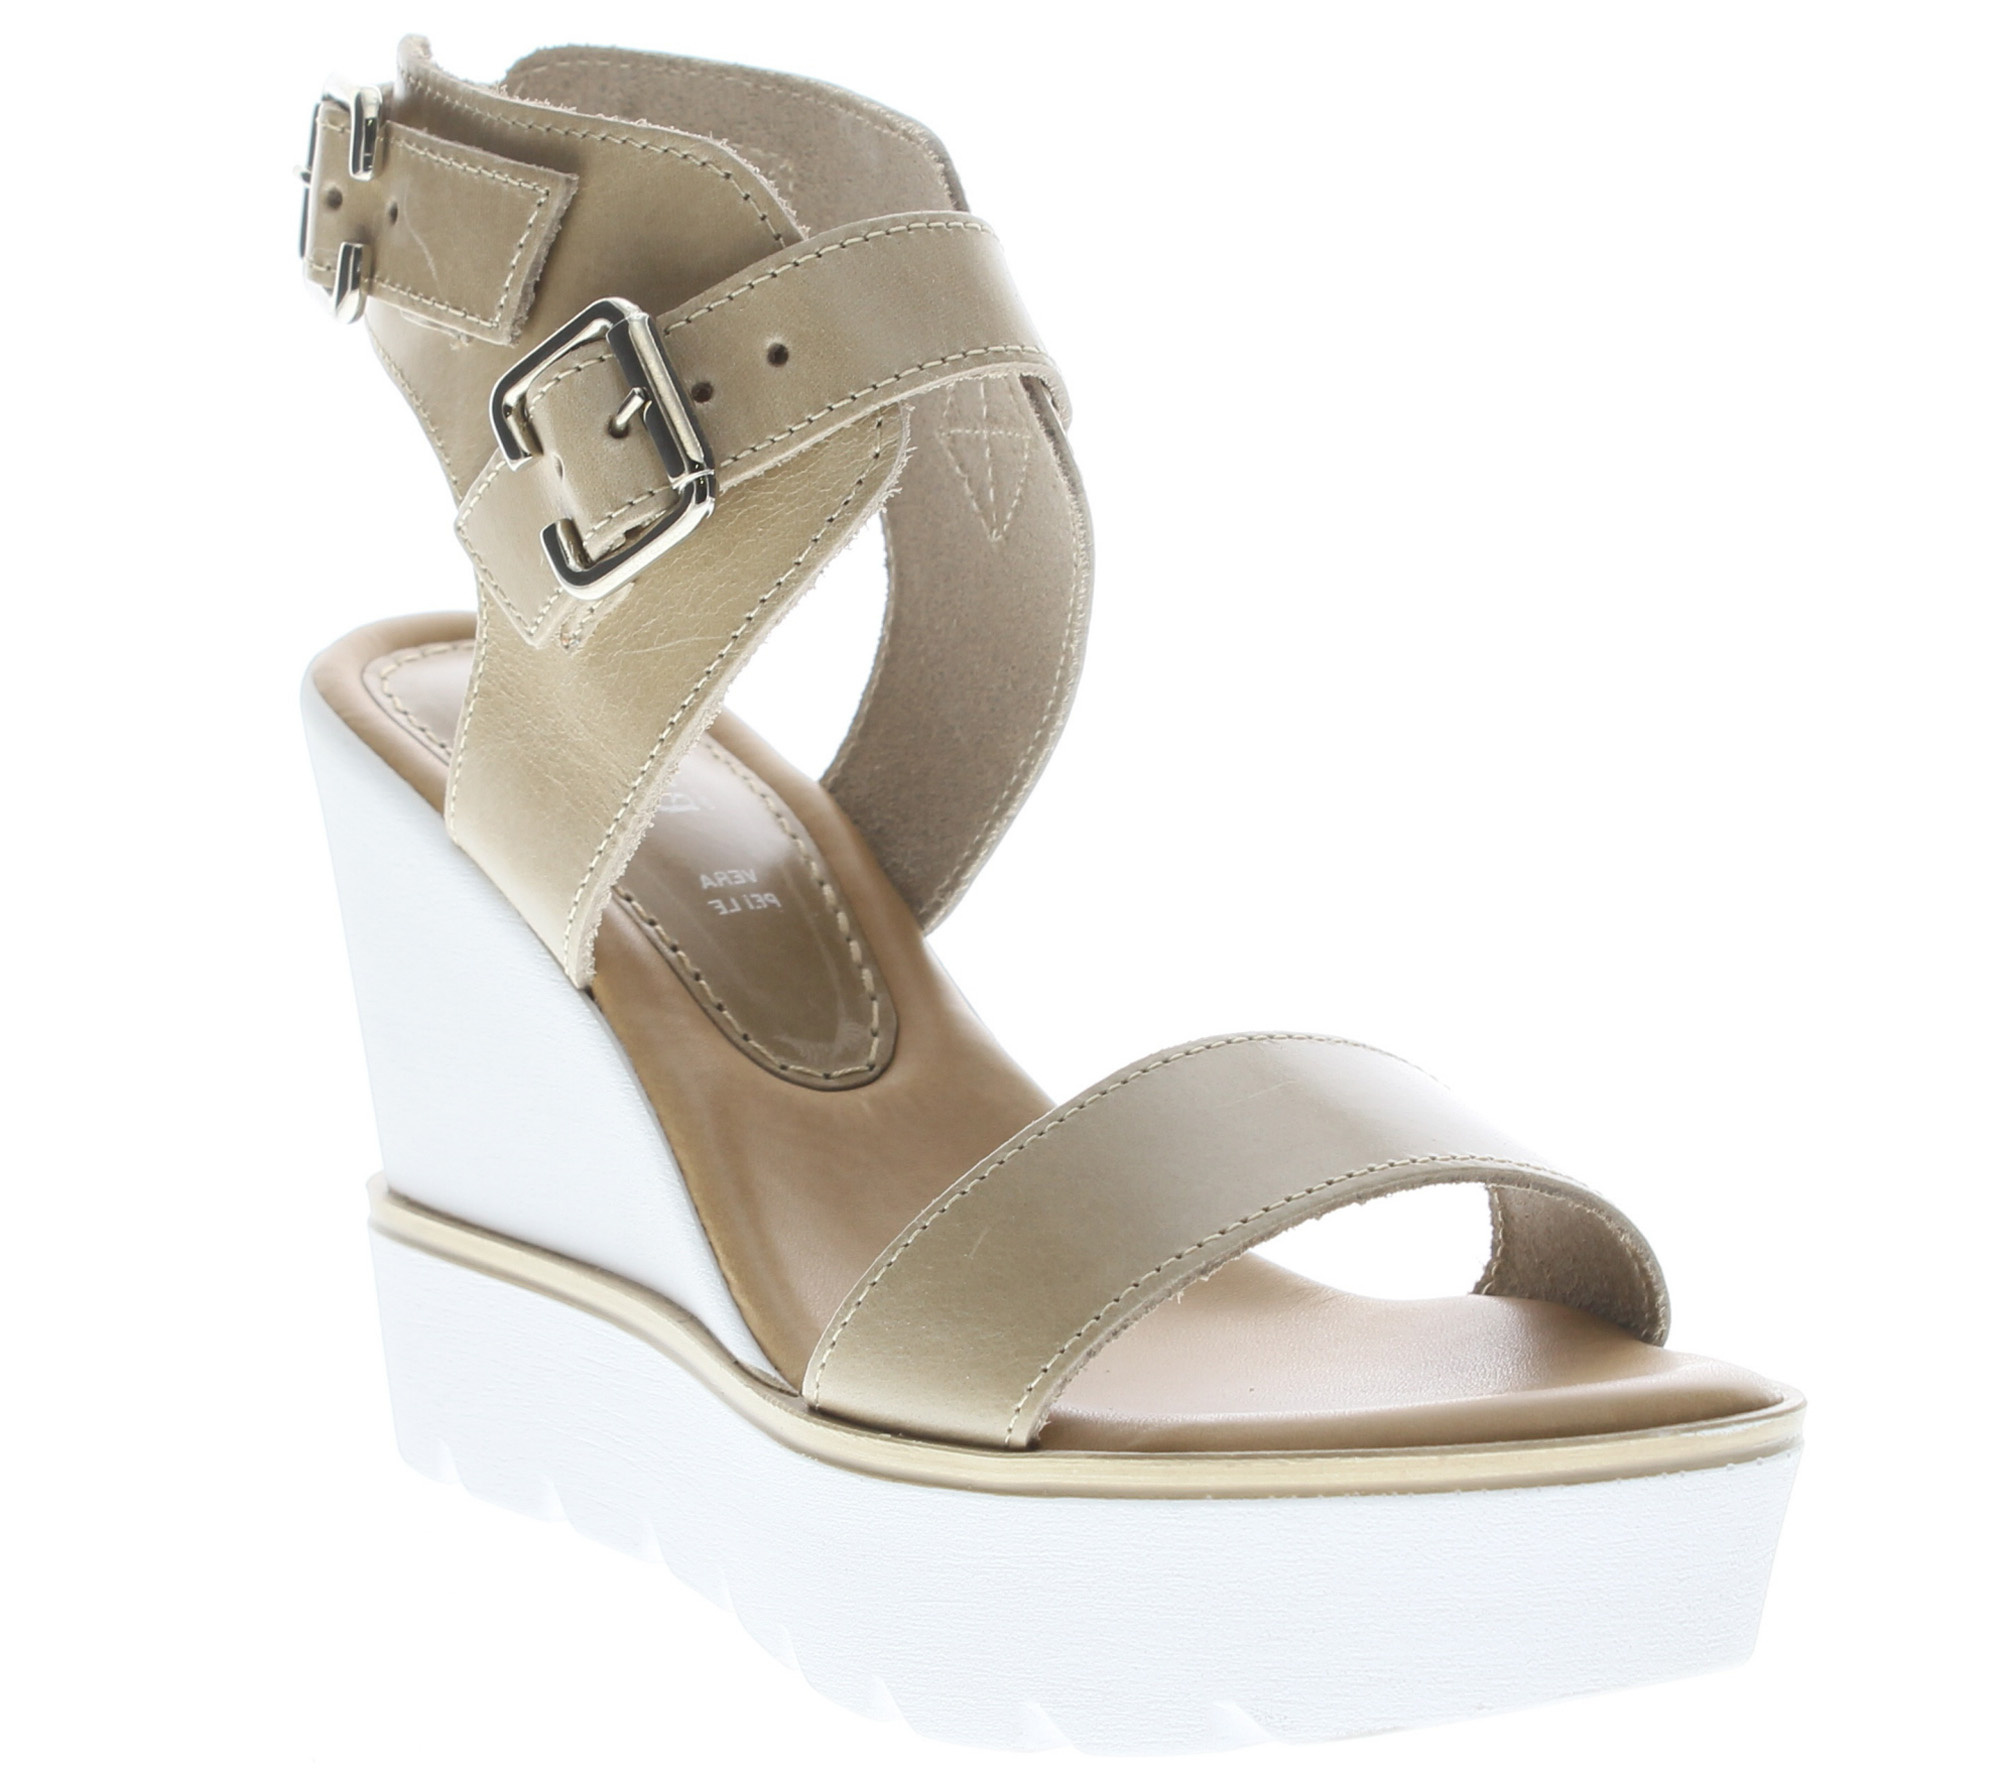 Azura by Spring Step Leather Wedge Sandals - Leticia